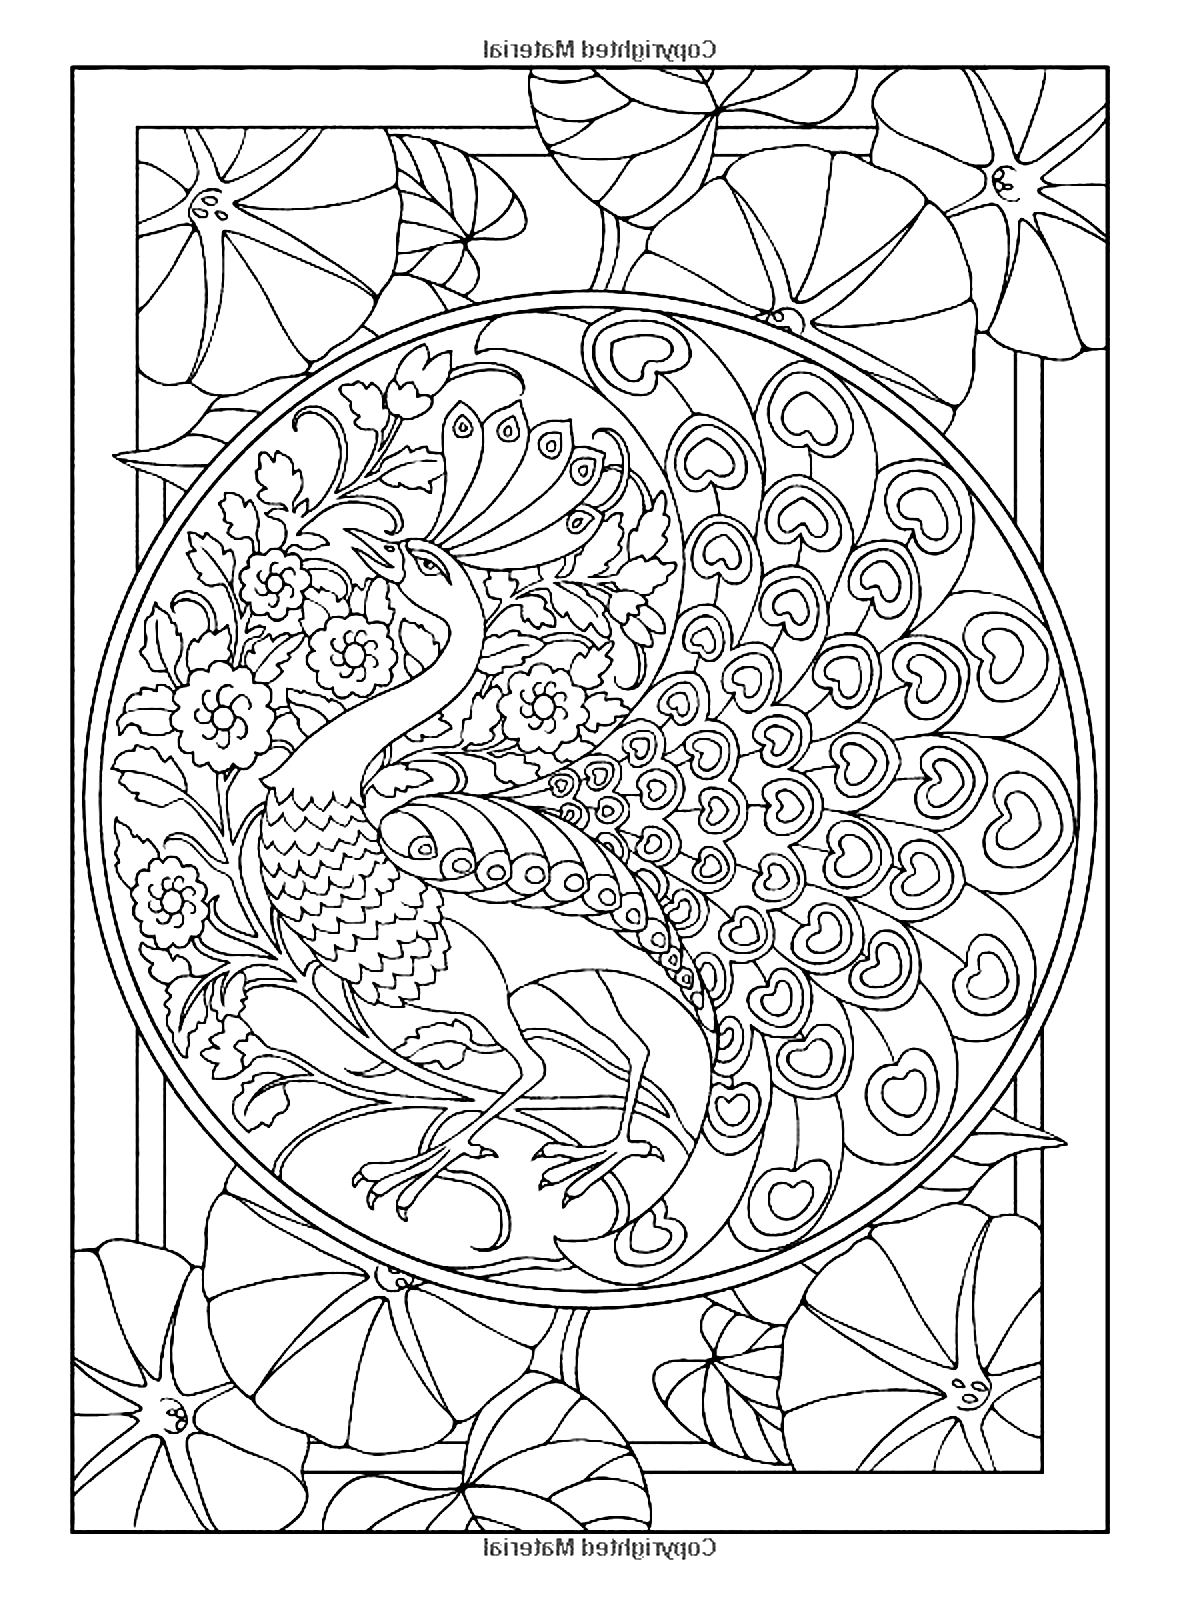 The peacock : an animal often used in Art Nouveau illustrations